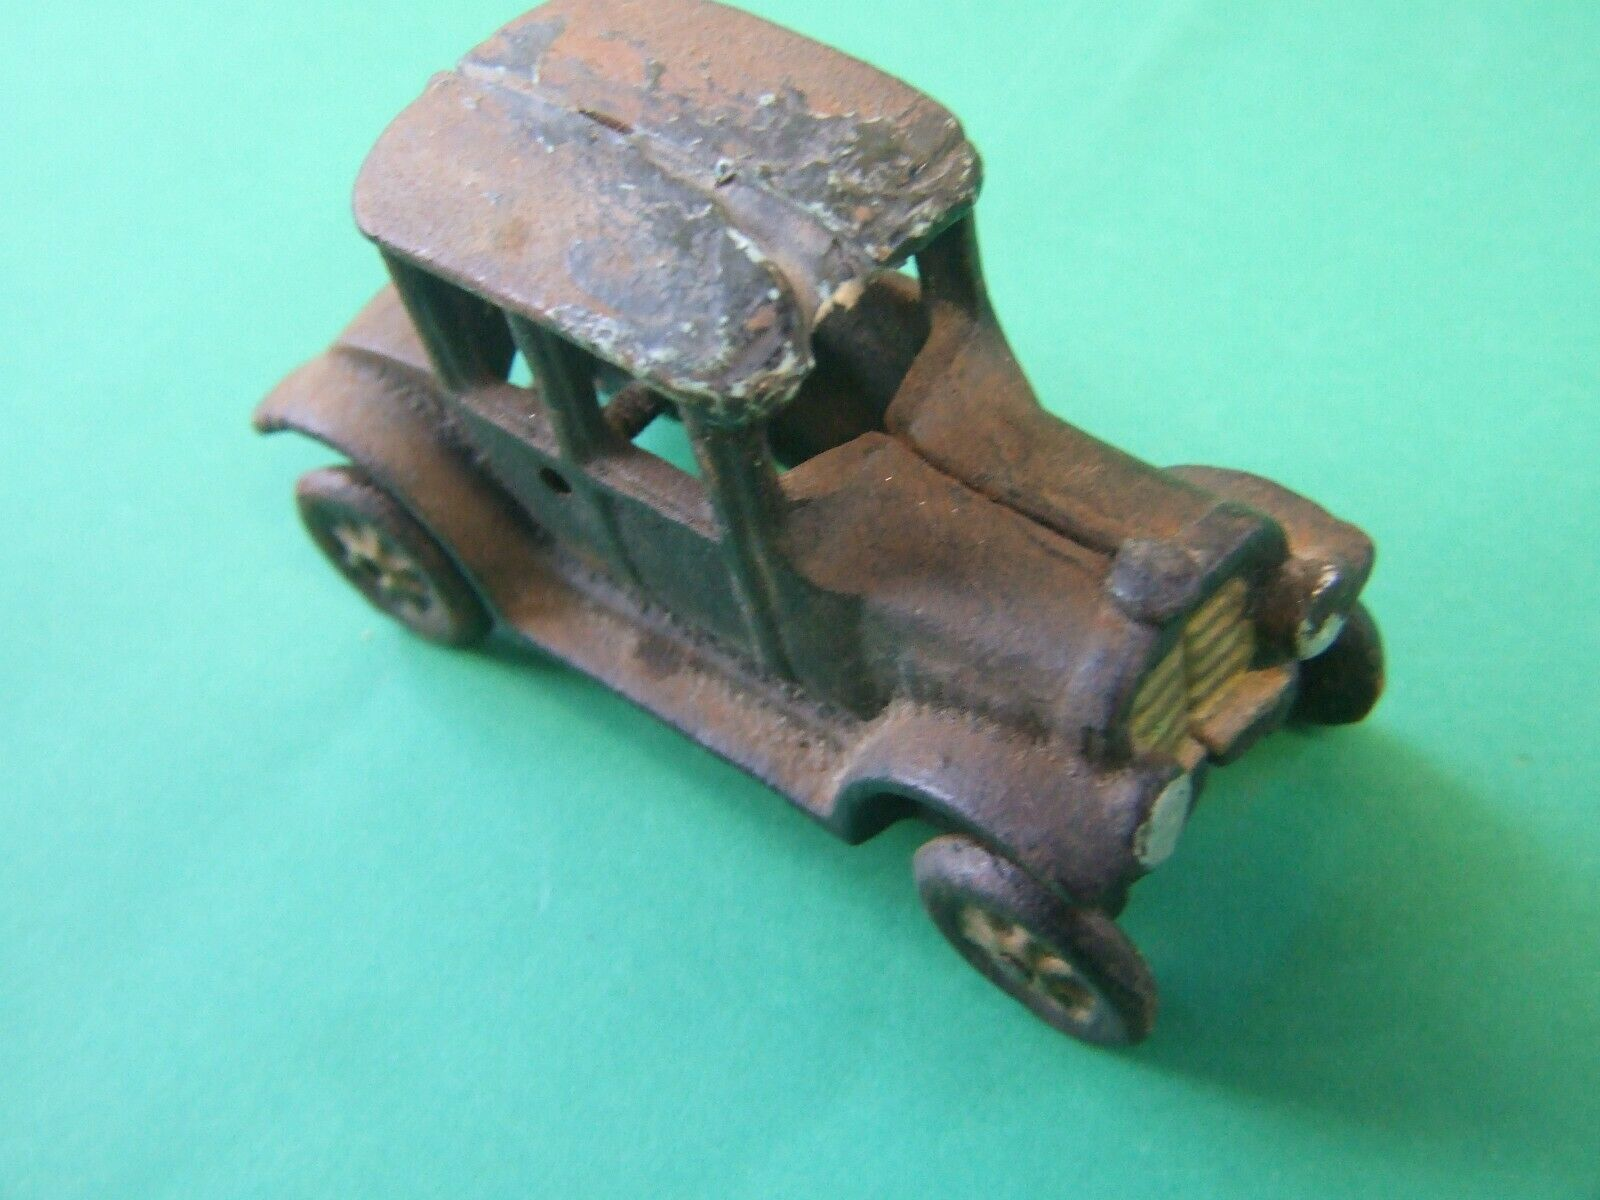 Antique Toy Old voiture Model Cast Iron Enfants Toy  Collectables  nous offrons diverses marques célèbres